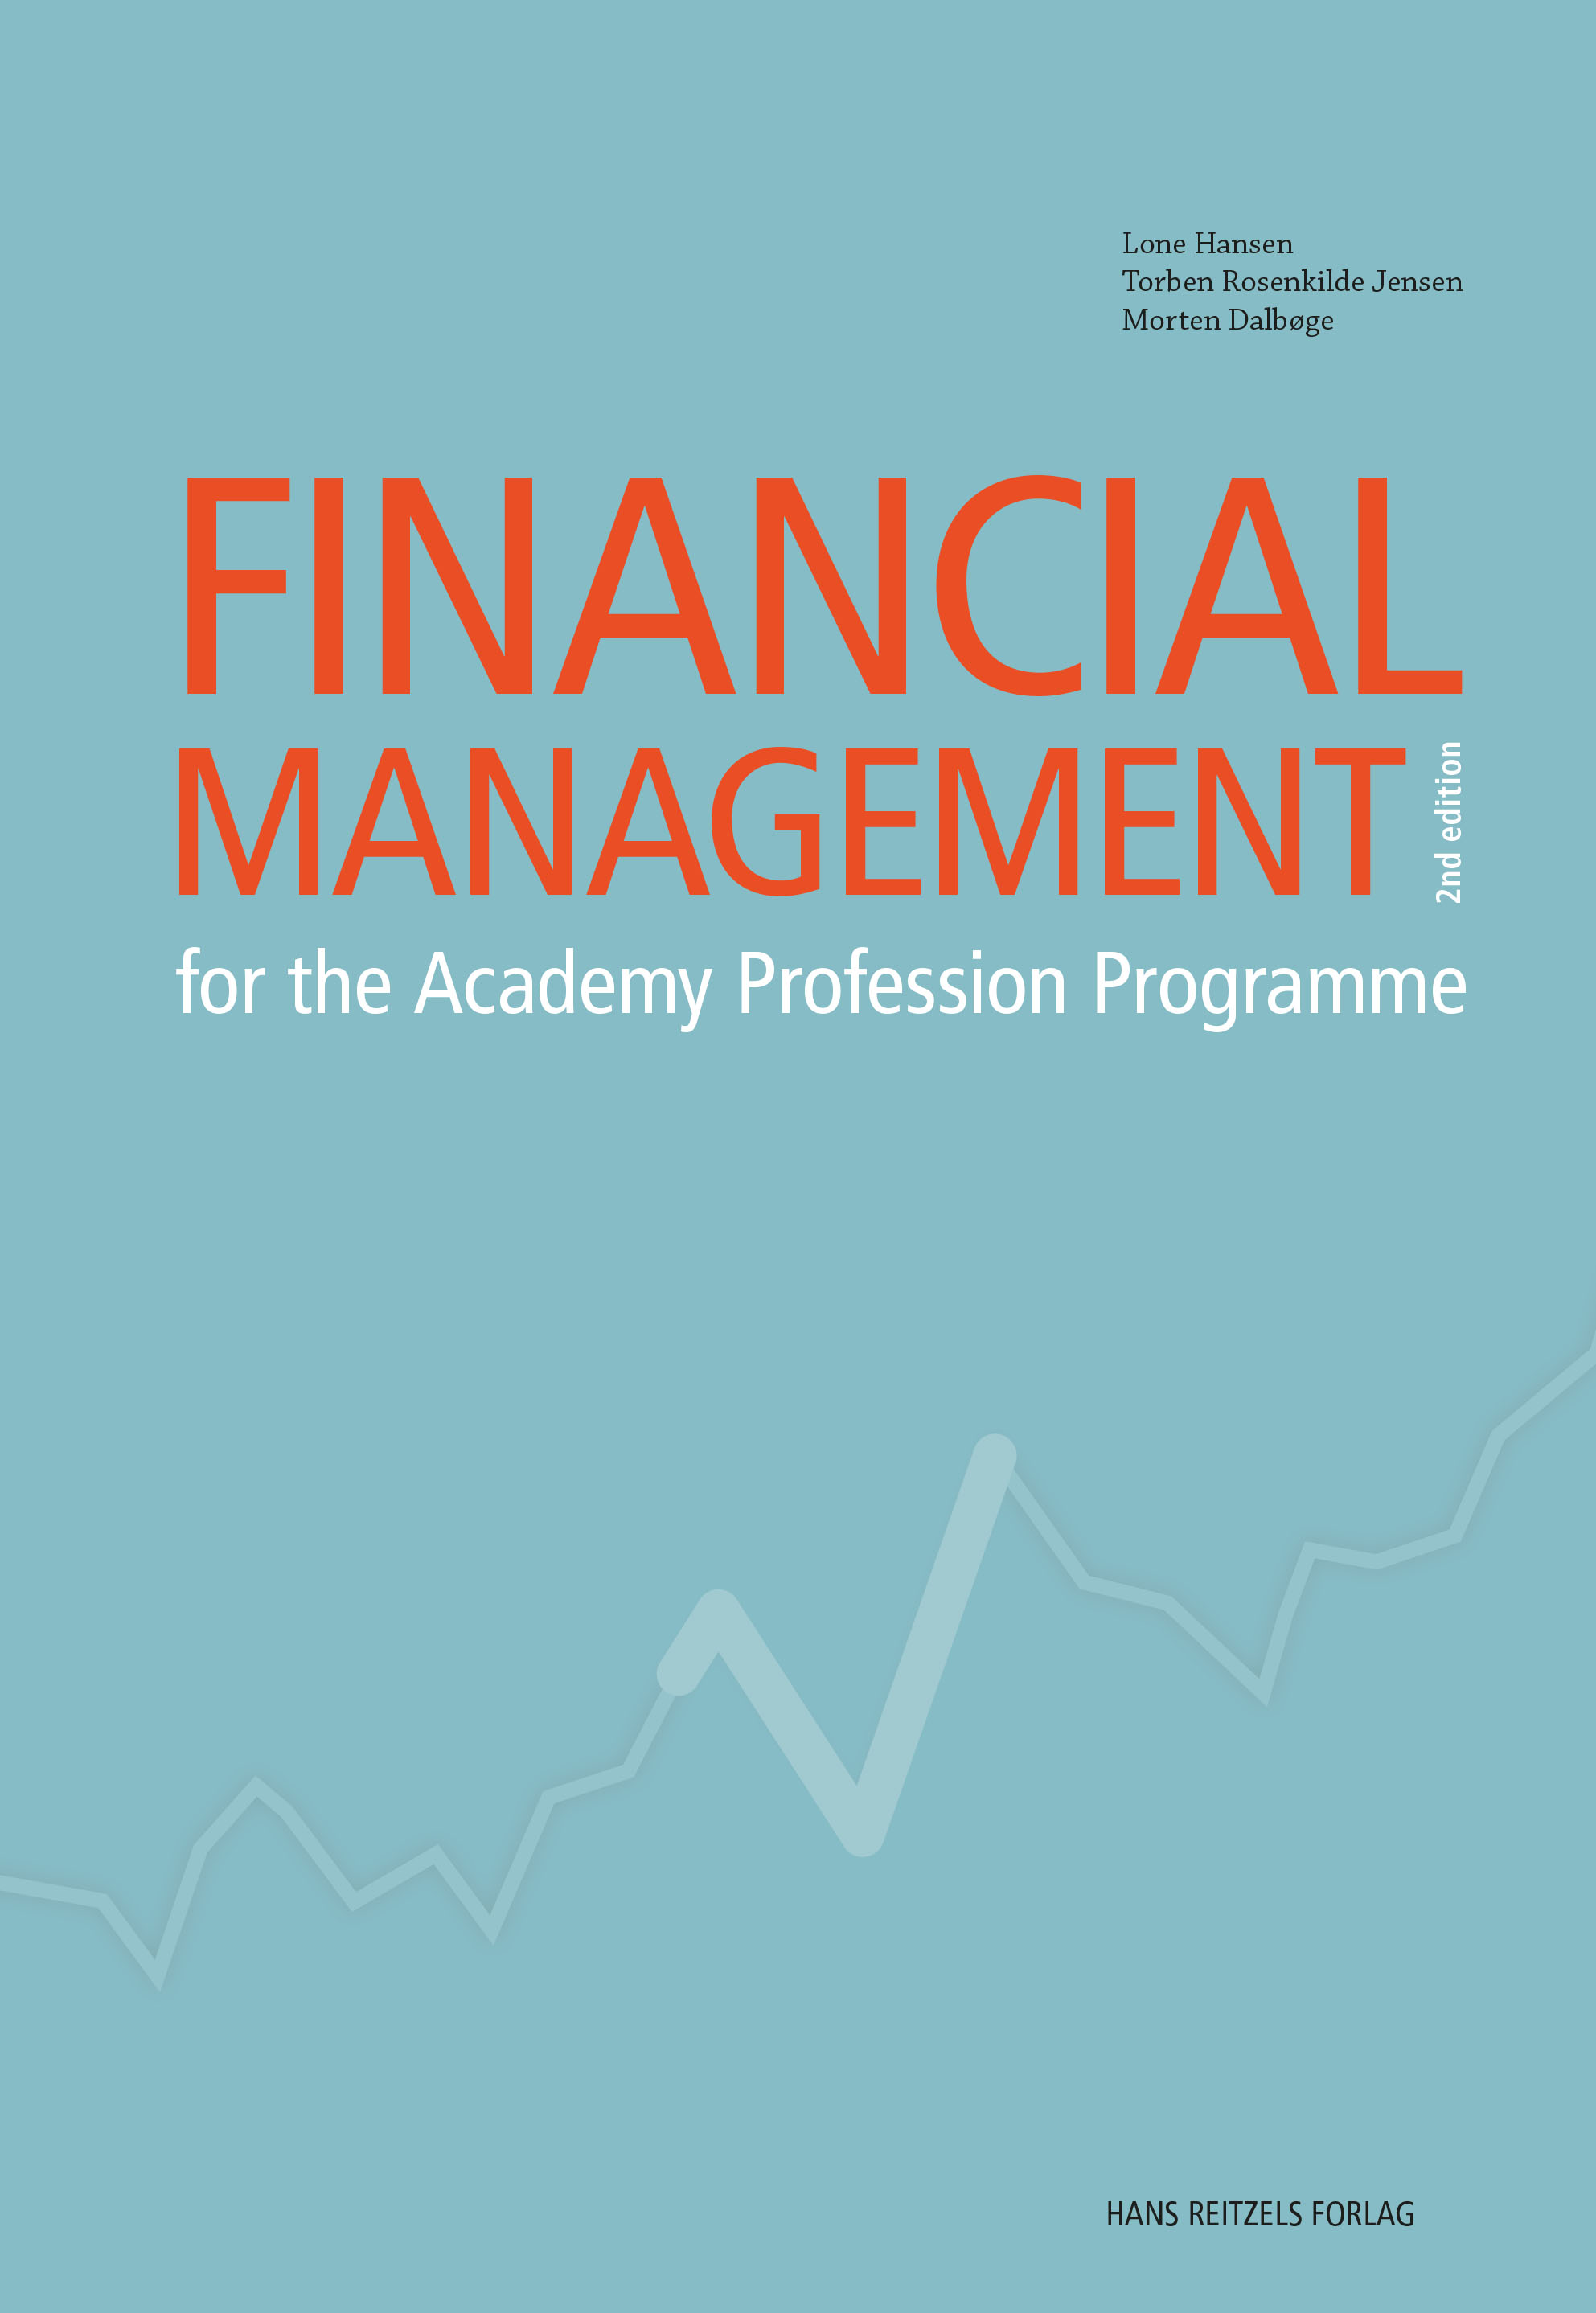 Ultramoderne Financial Management - for the Academy Profession Programme af GS-54